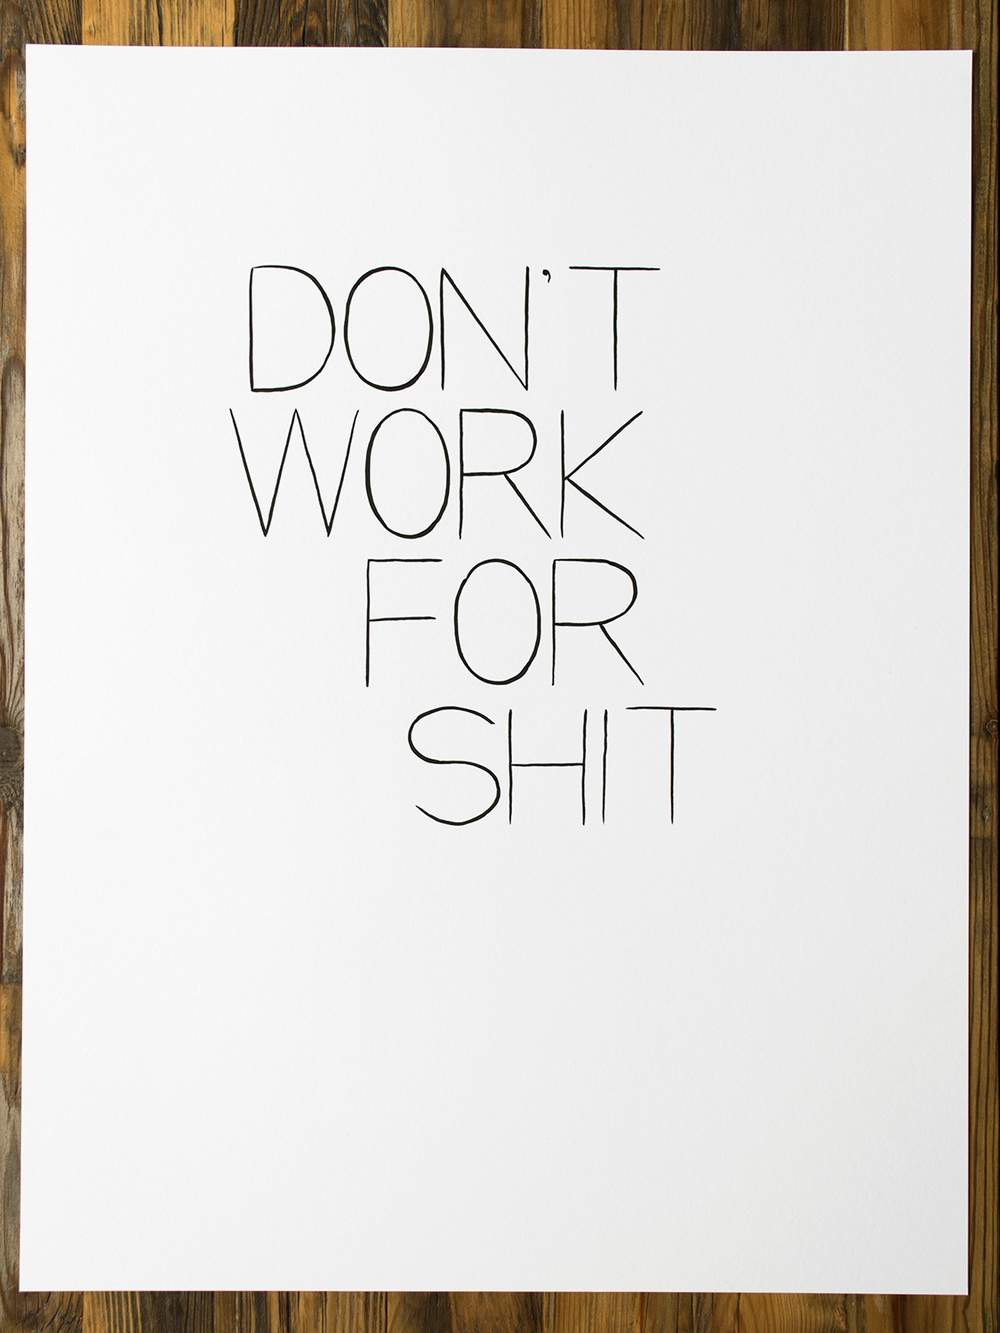 dont_work_for_shit-1500x1125.jpg